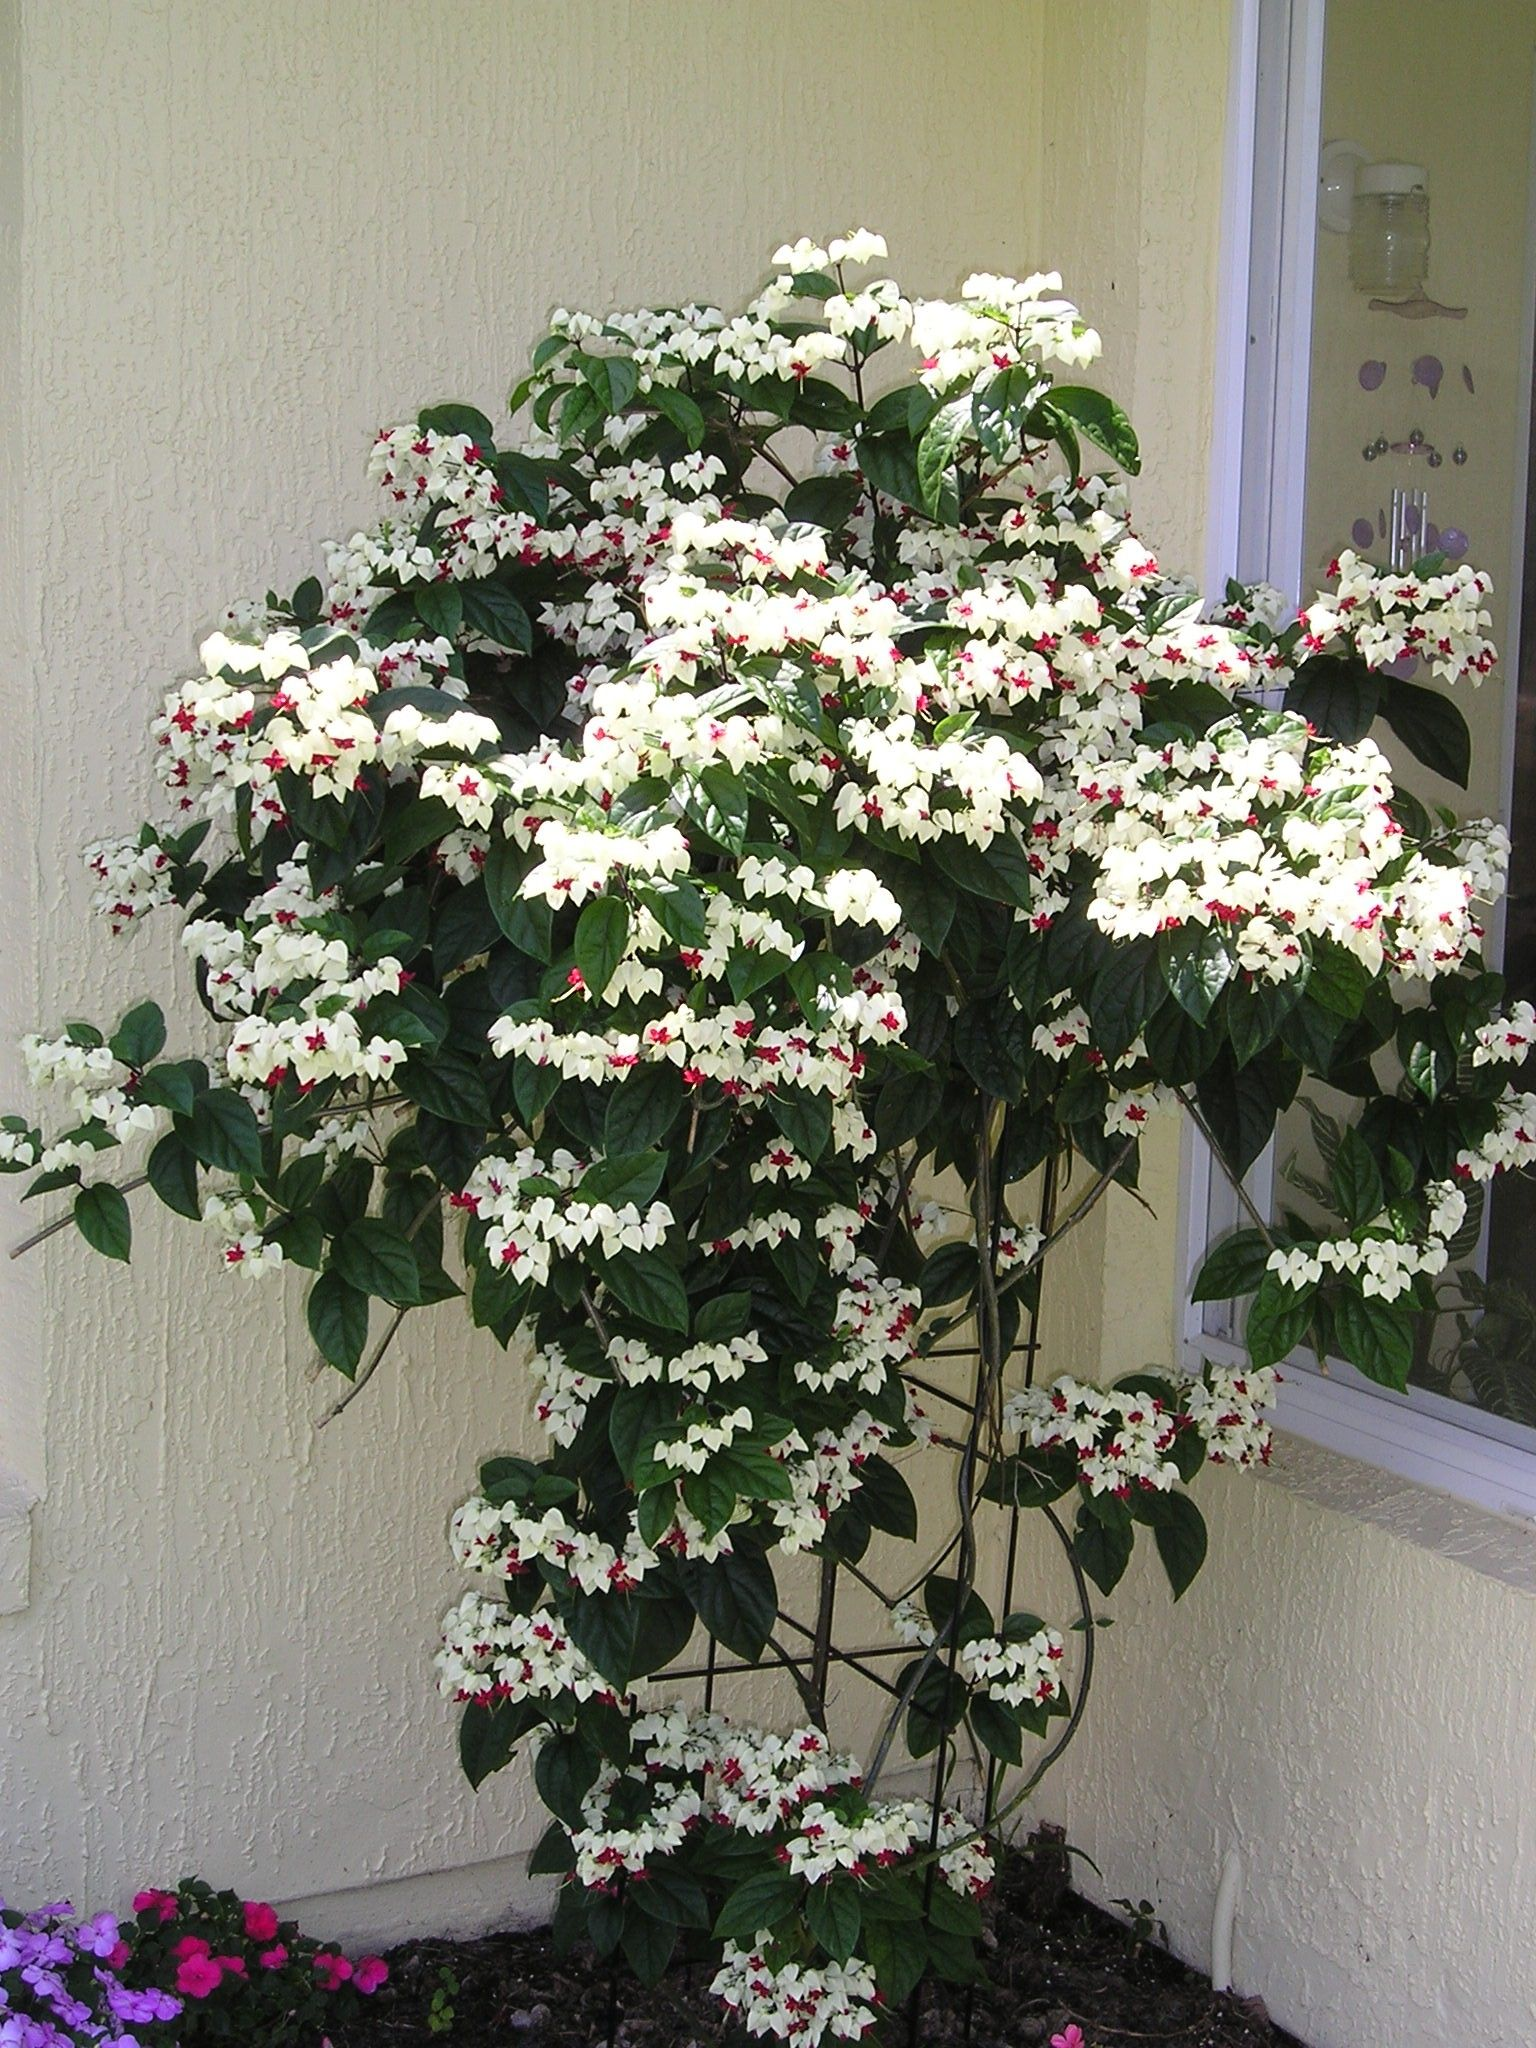 This Is The Bleeding Heart Houseplant That I Have Can T Wait For It To Get That Big Flores Estranhas Trepadeiras Plantas Jardim